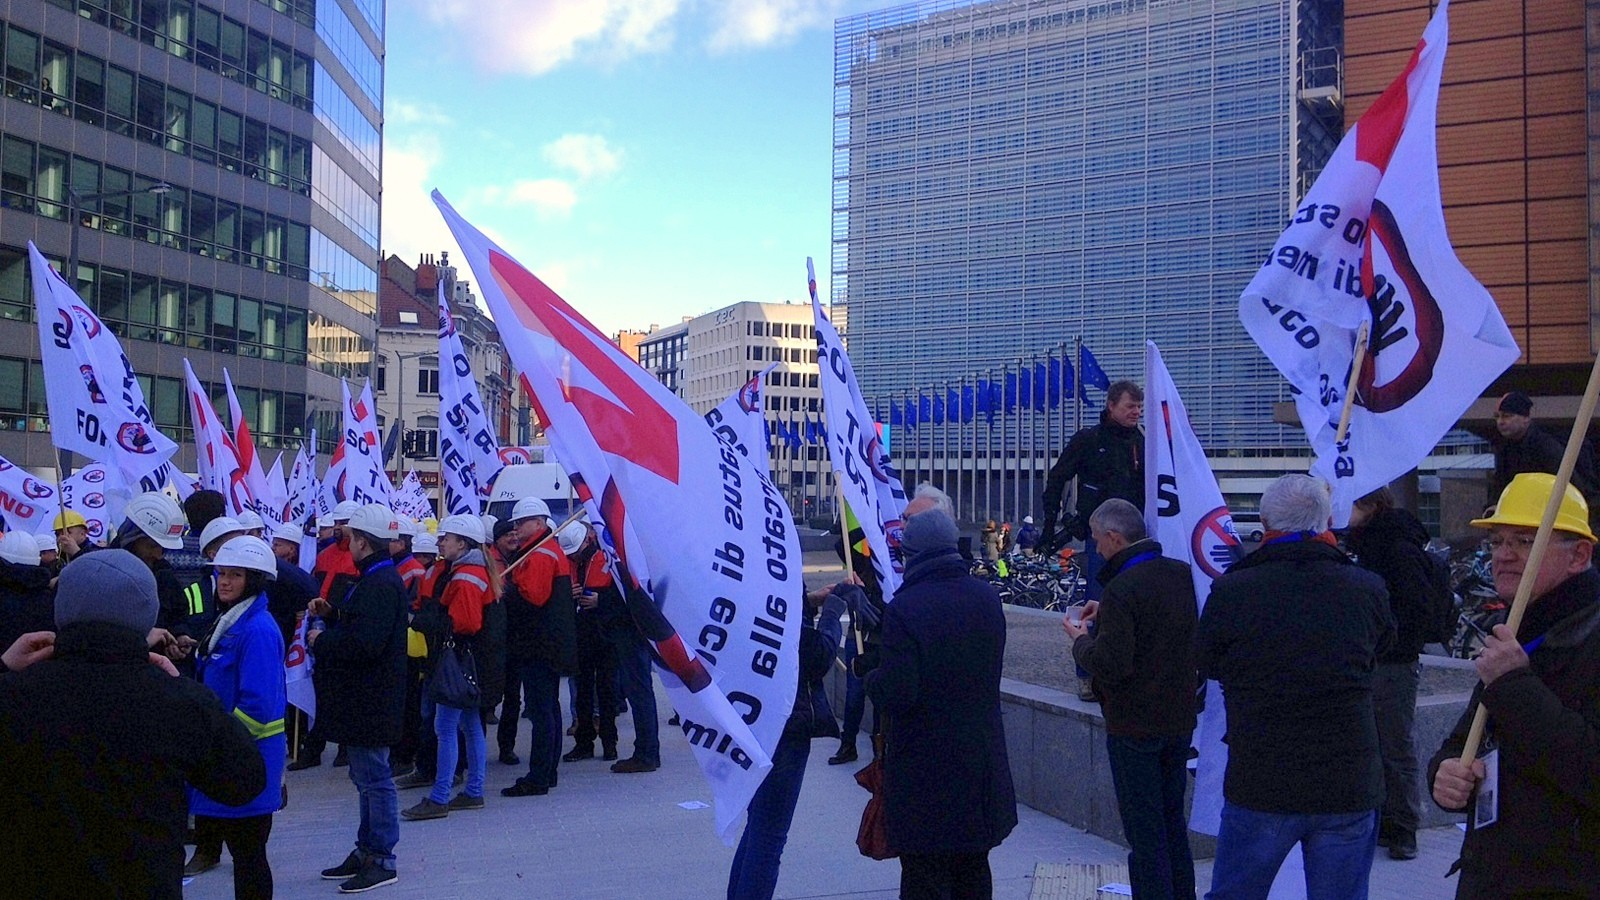 Steel industry workers' demonstration outside Berlaymont in Brussels on February 23, 2016 / Andreas Liljeheden, Euranet Plus News Agency / CC BY-SA 2.0